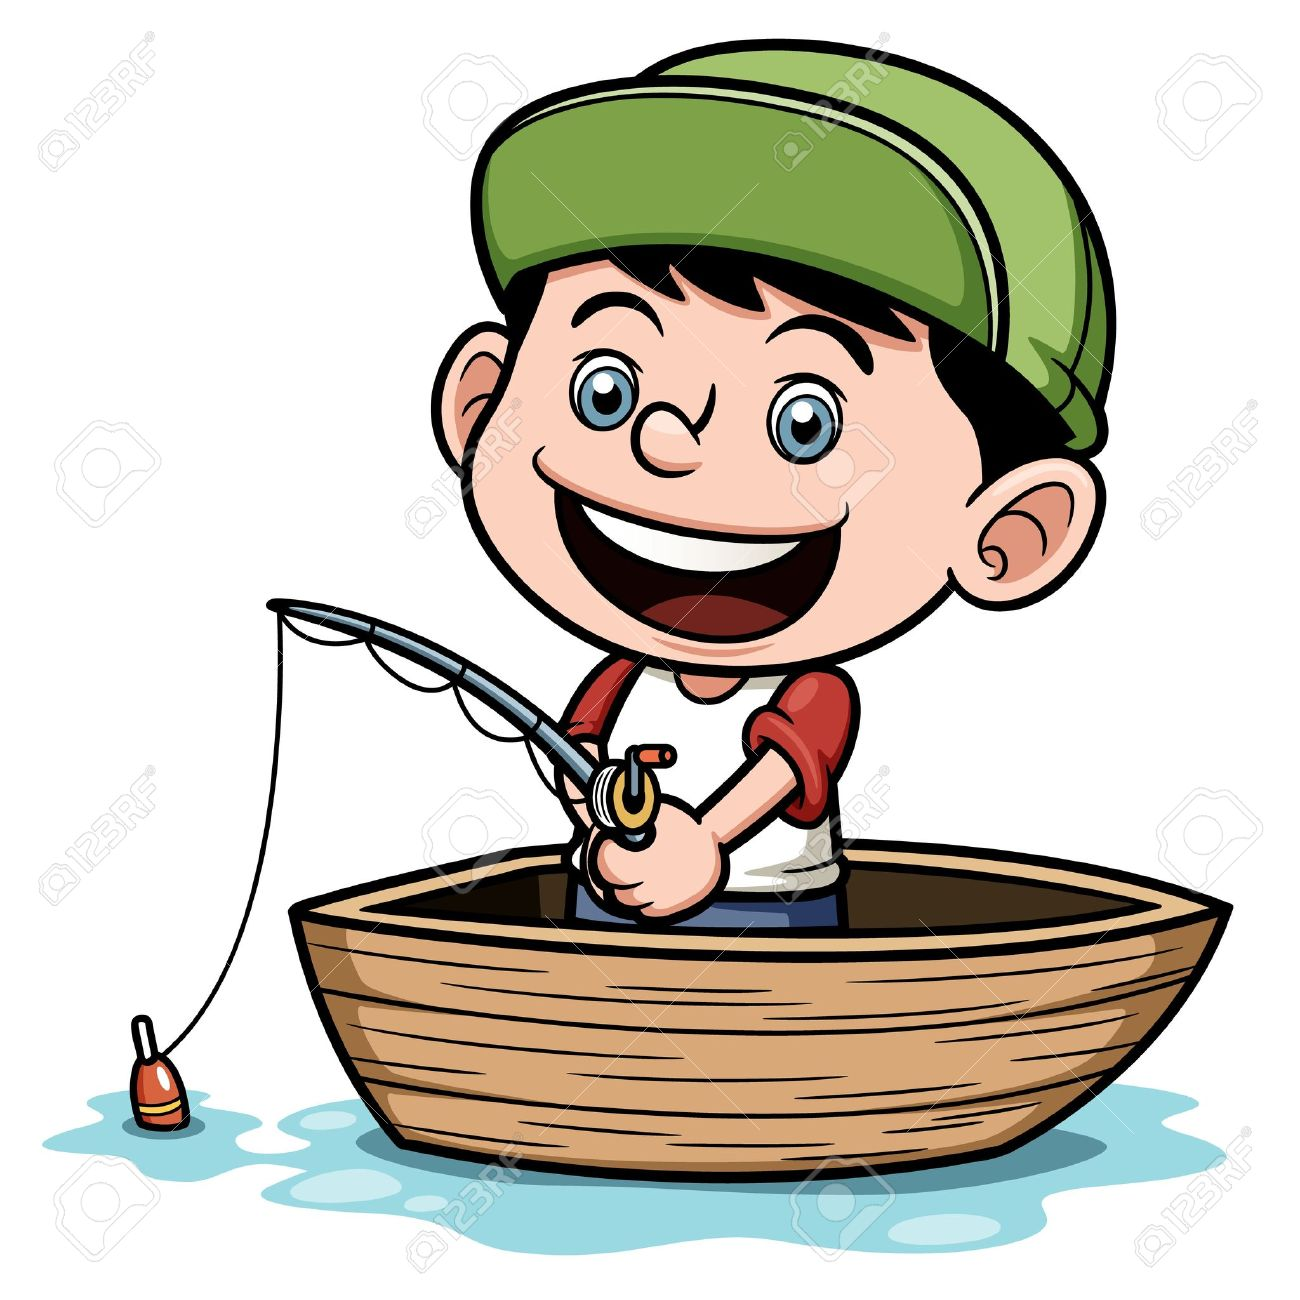 1300x1300 Fishing Boat Clipart Boy Fishing